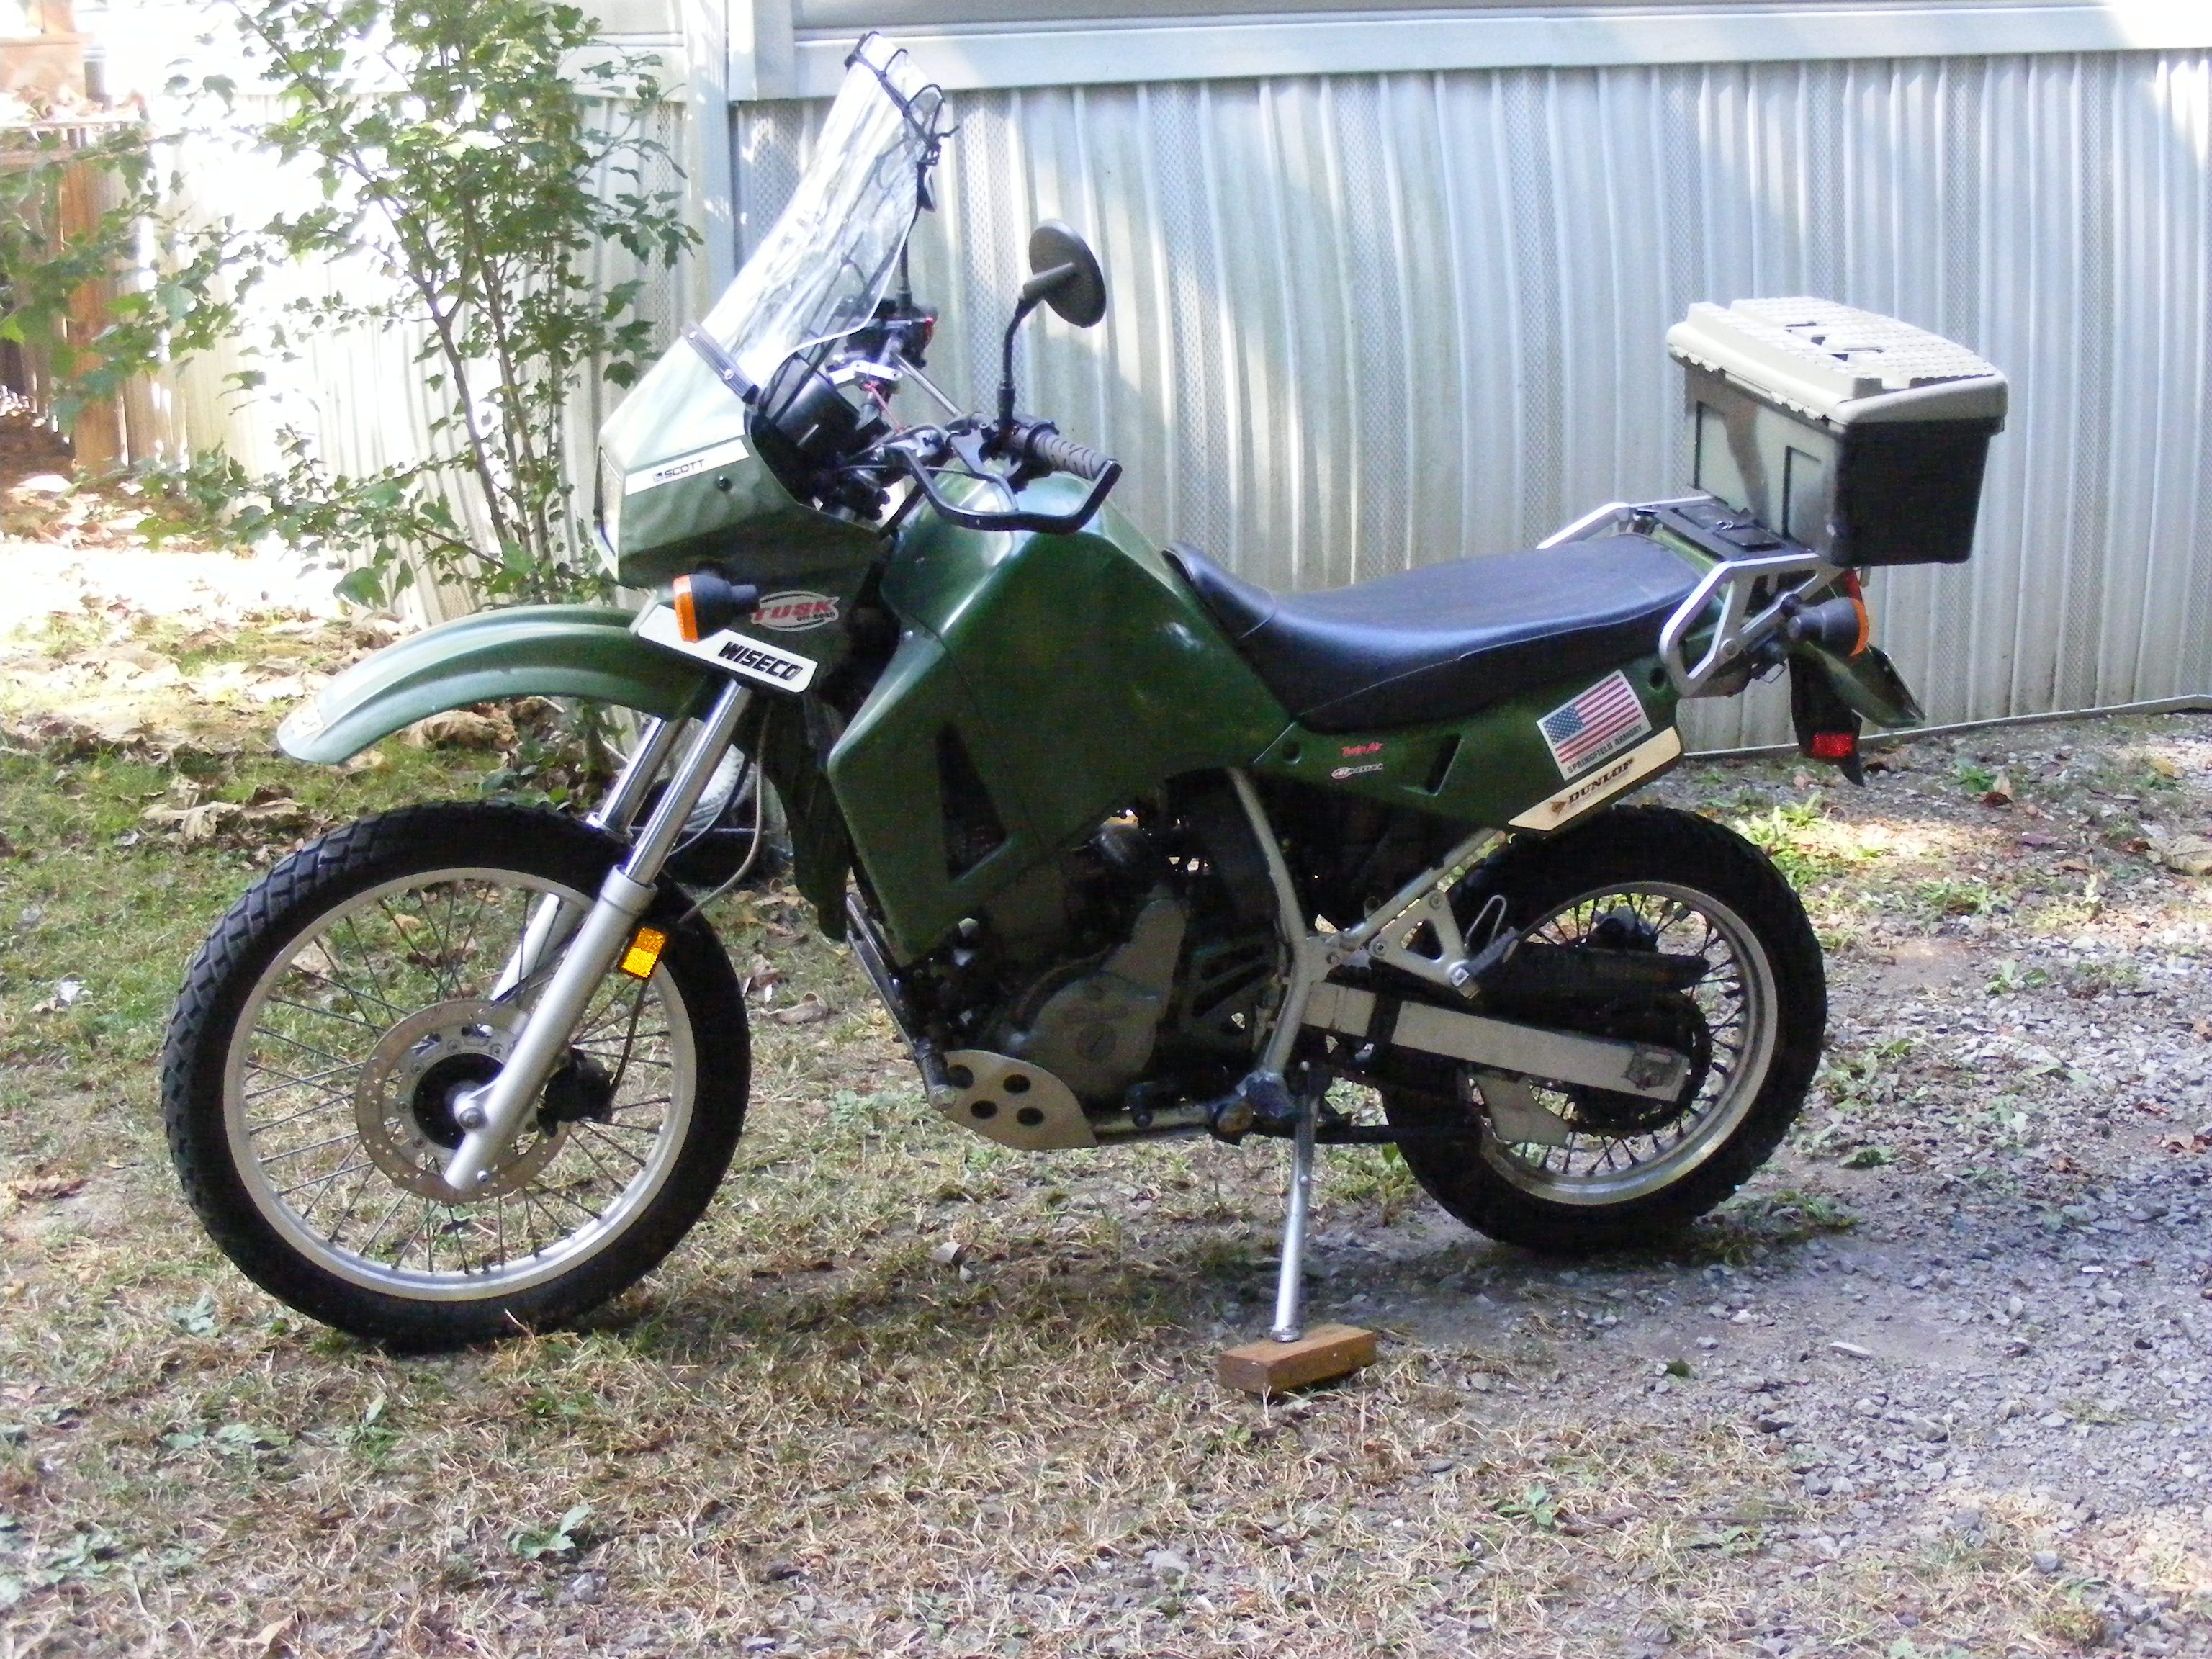 One Of My Very Dependable Klr Bikes Many Memories And Gravel Miles On This One Adventure Bike Klr 650 Bike